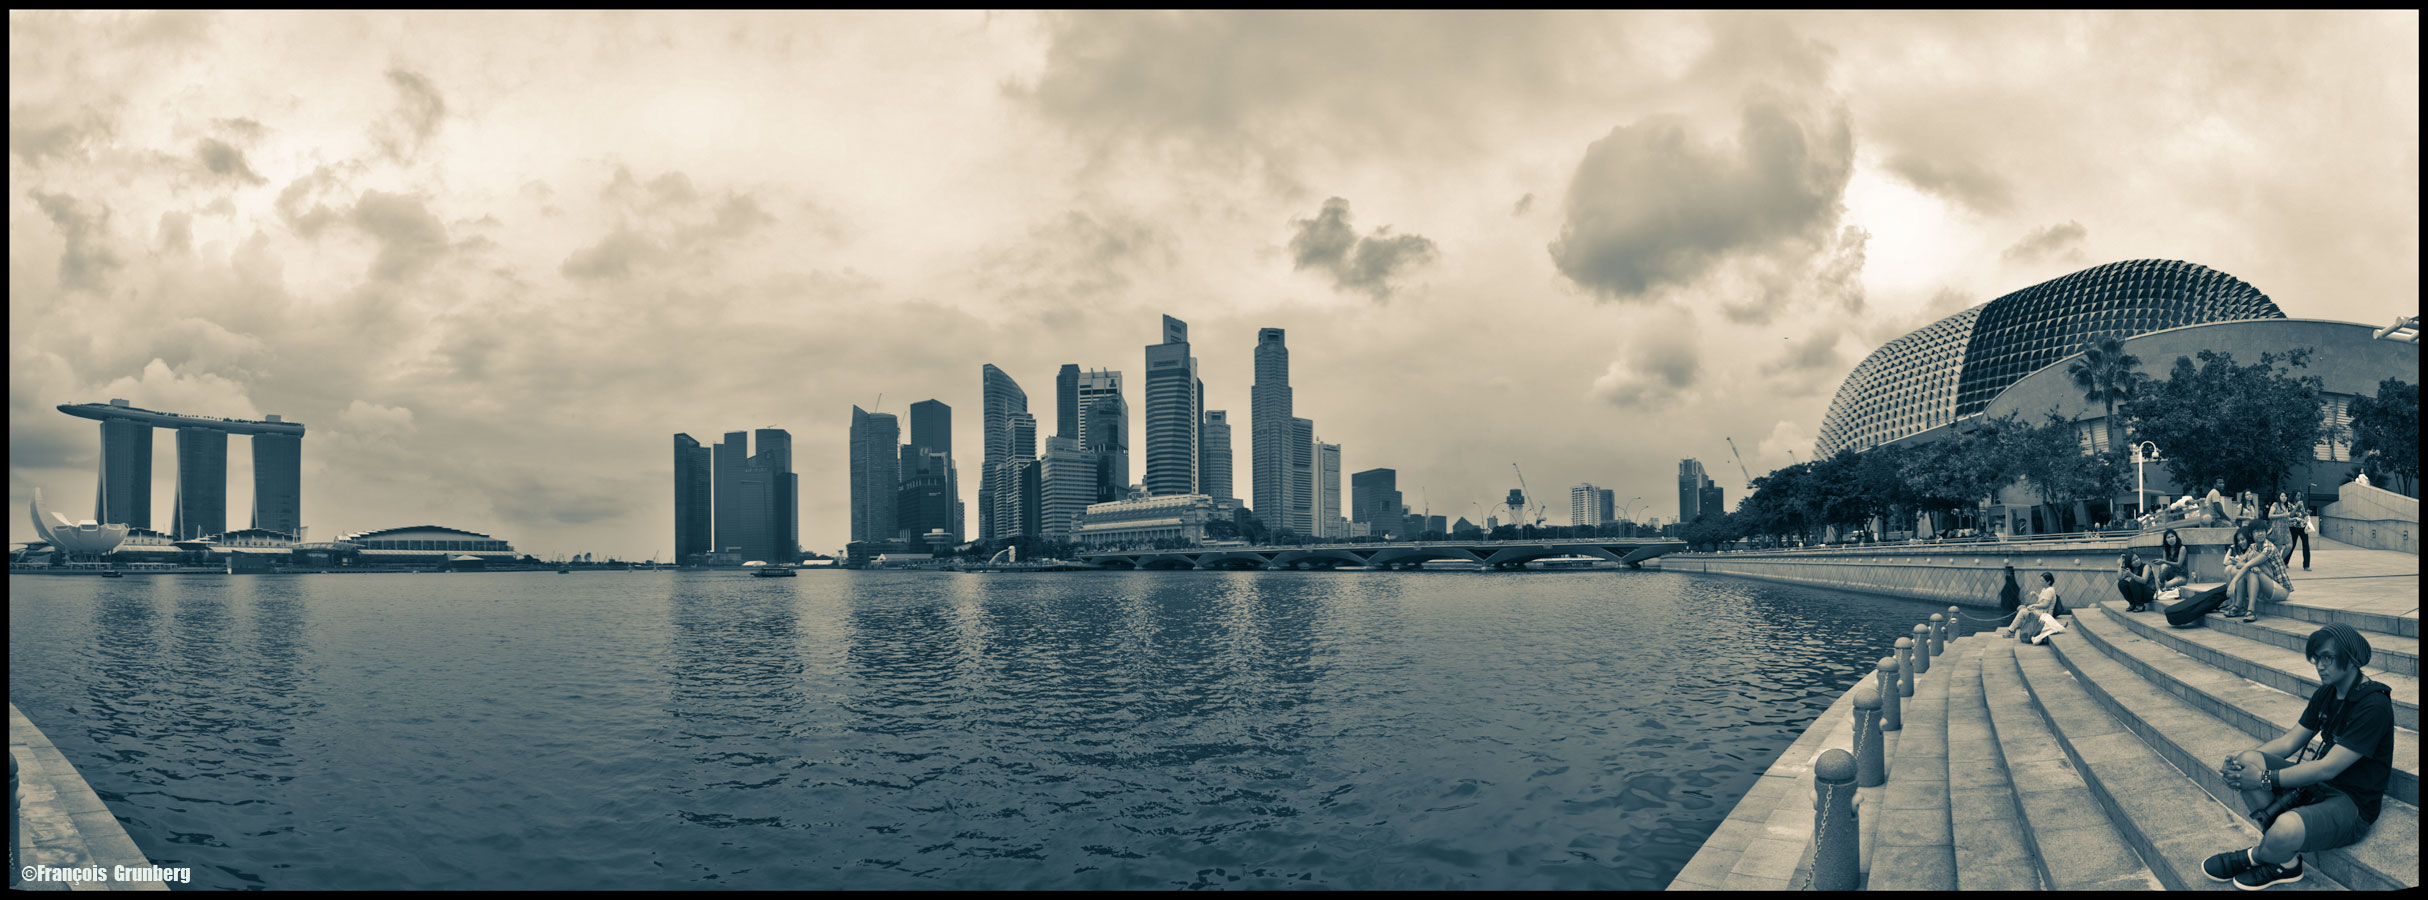 Marina Bay Singapore by partoftime